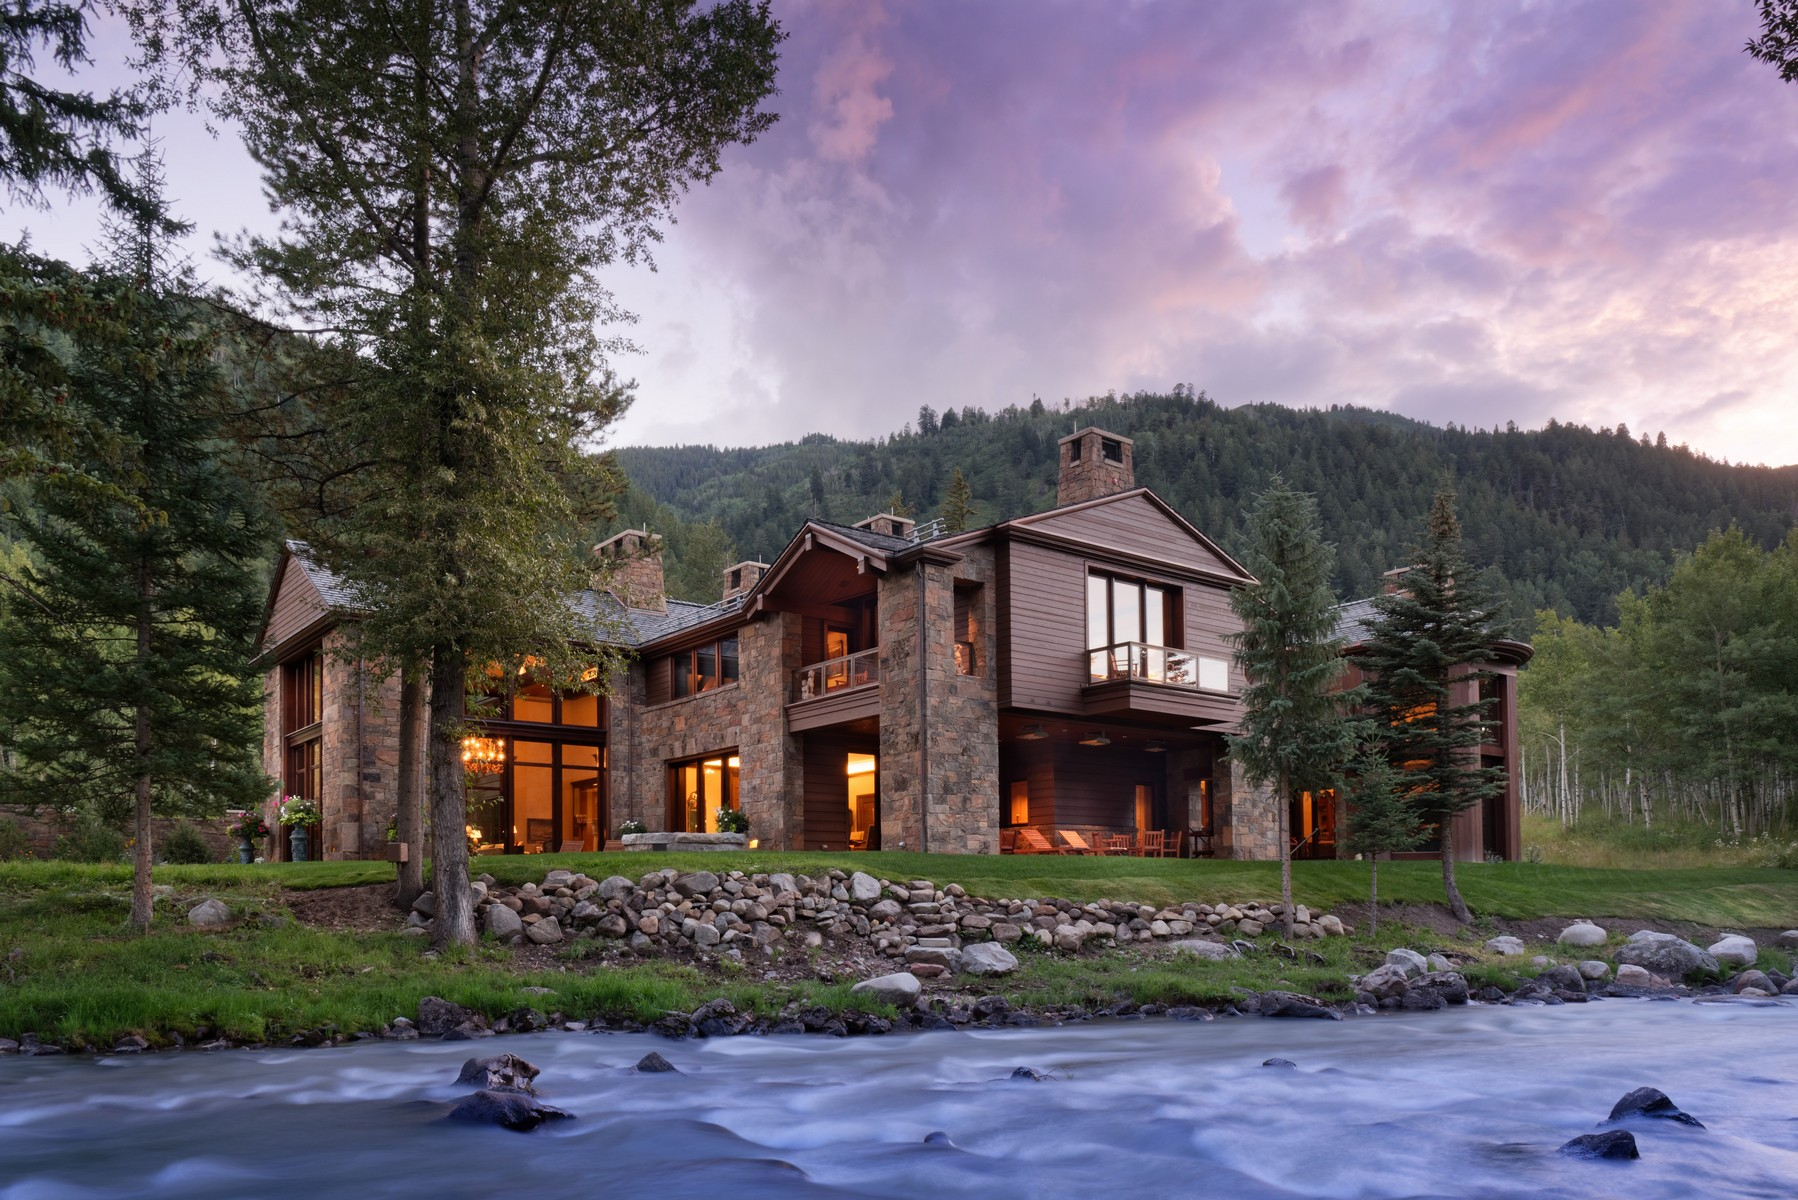 Single Family Home for Sale at Talk About a Water Feature! 41 Popcorn Lane East Aspen, Aspen, Colorado 81611 United States